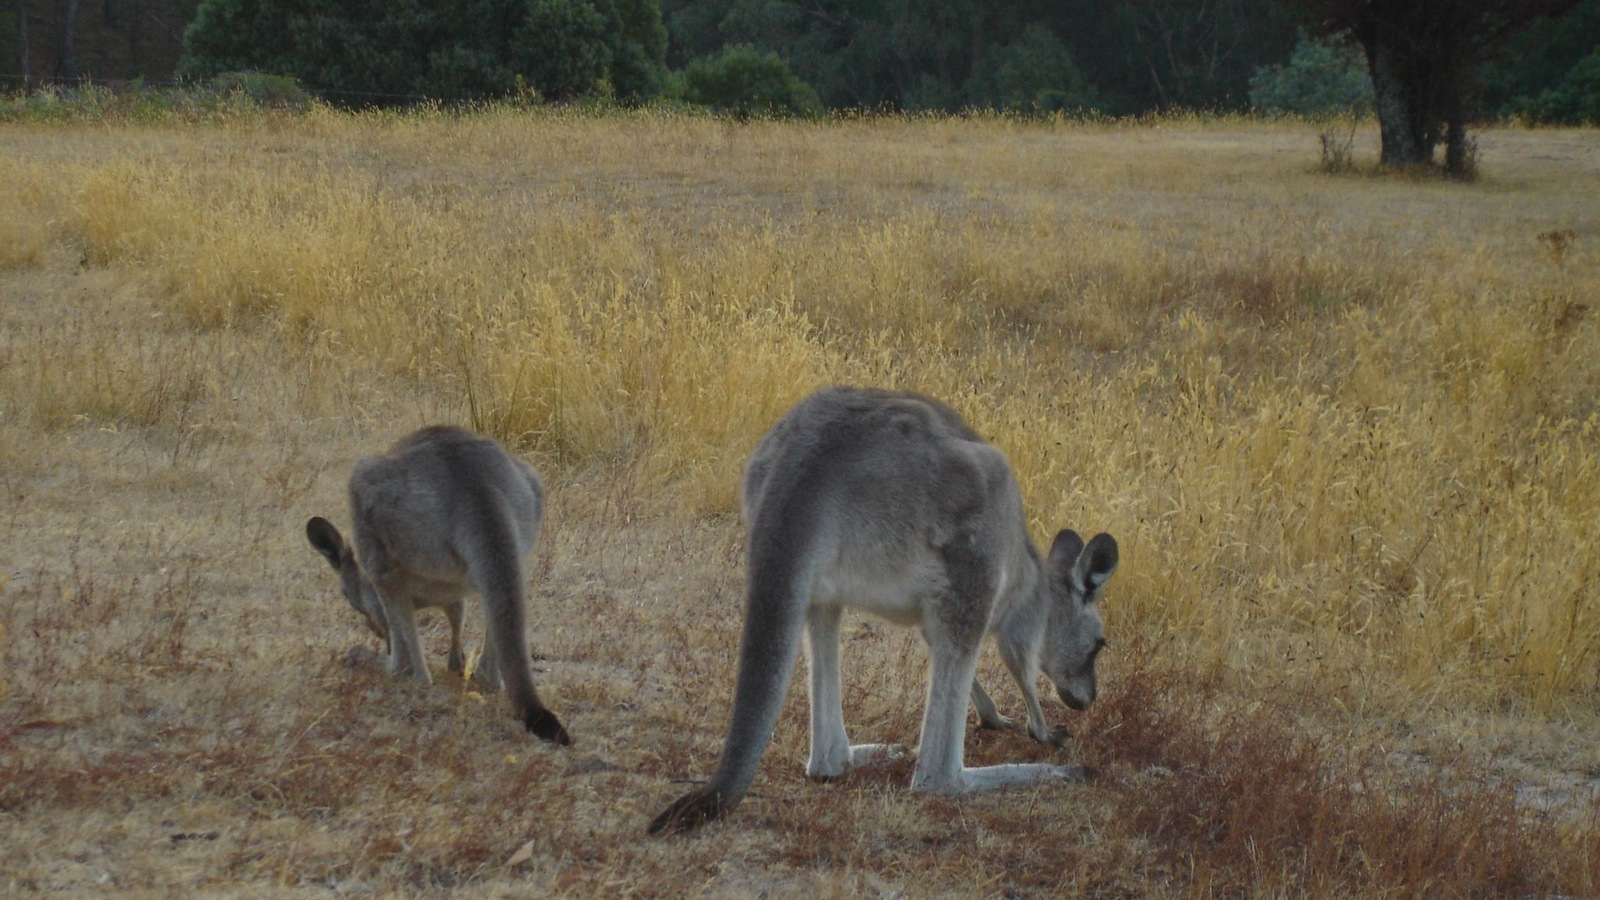 Some of the local Kangaroos